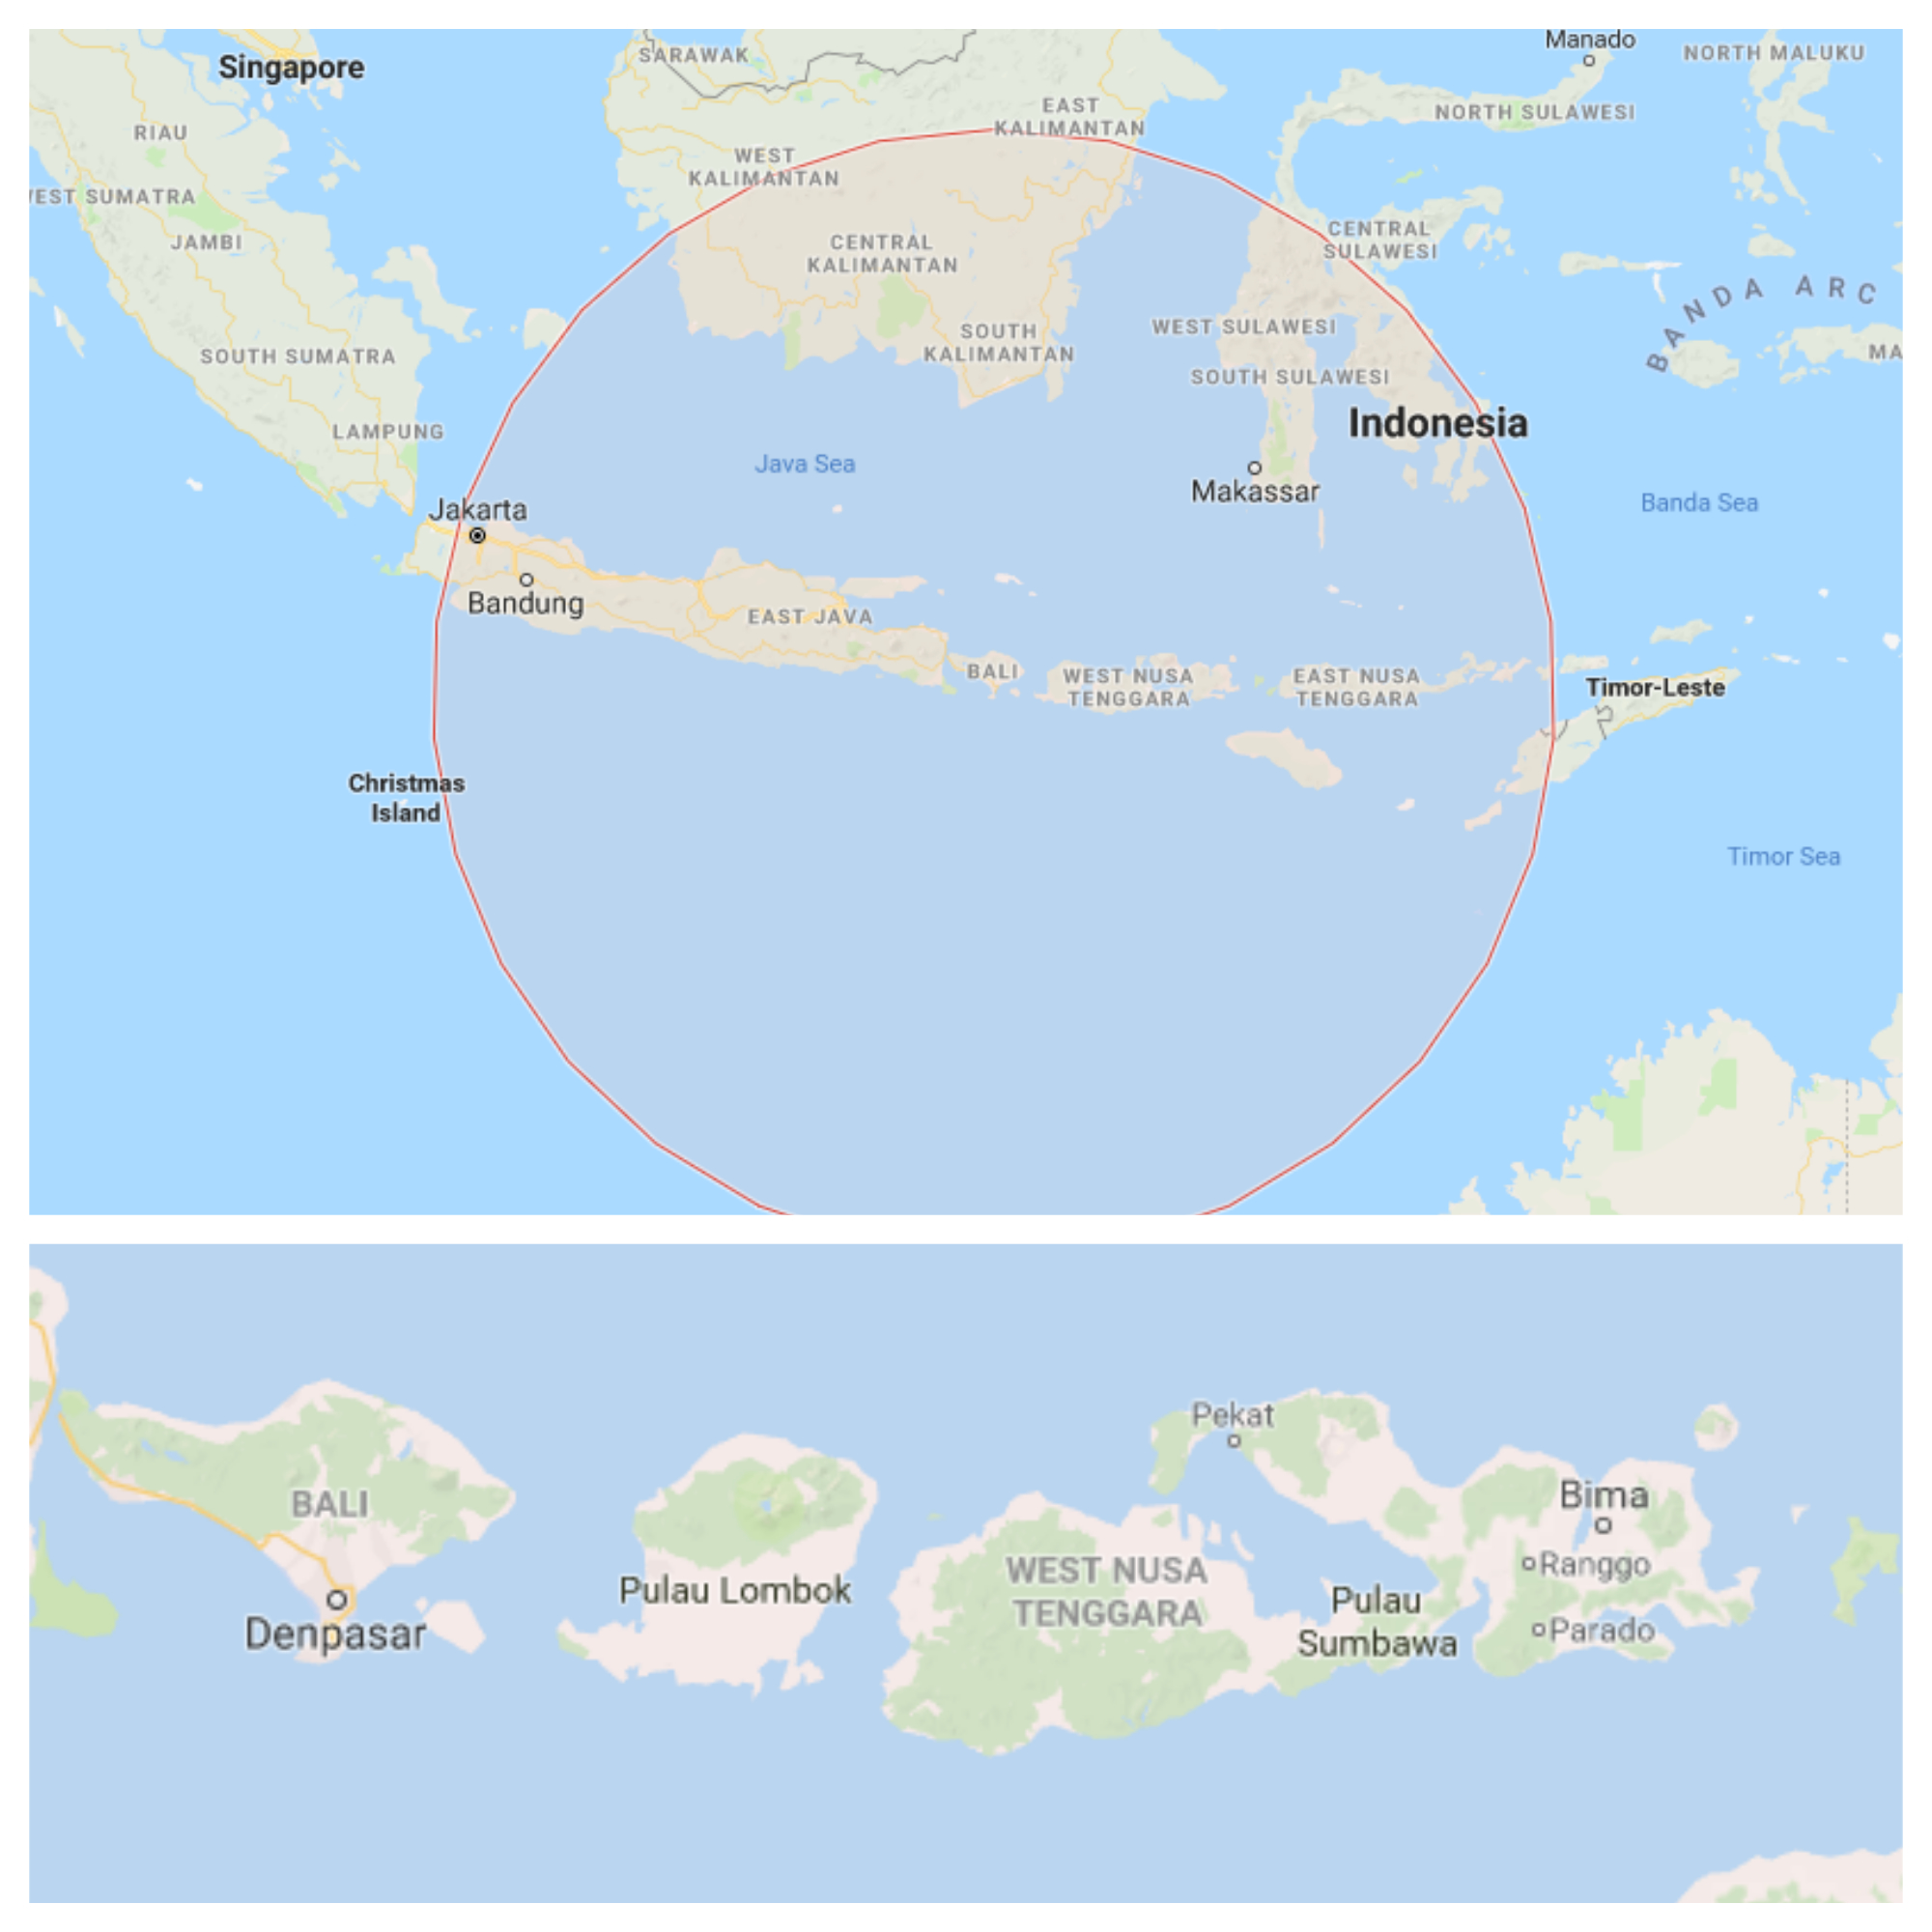 Third Strong Earthquake Hits Indonesian Islands | Voice of America ...